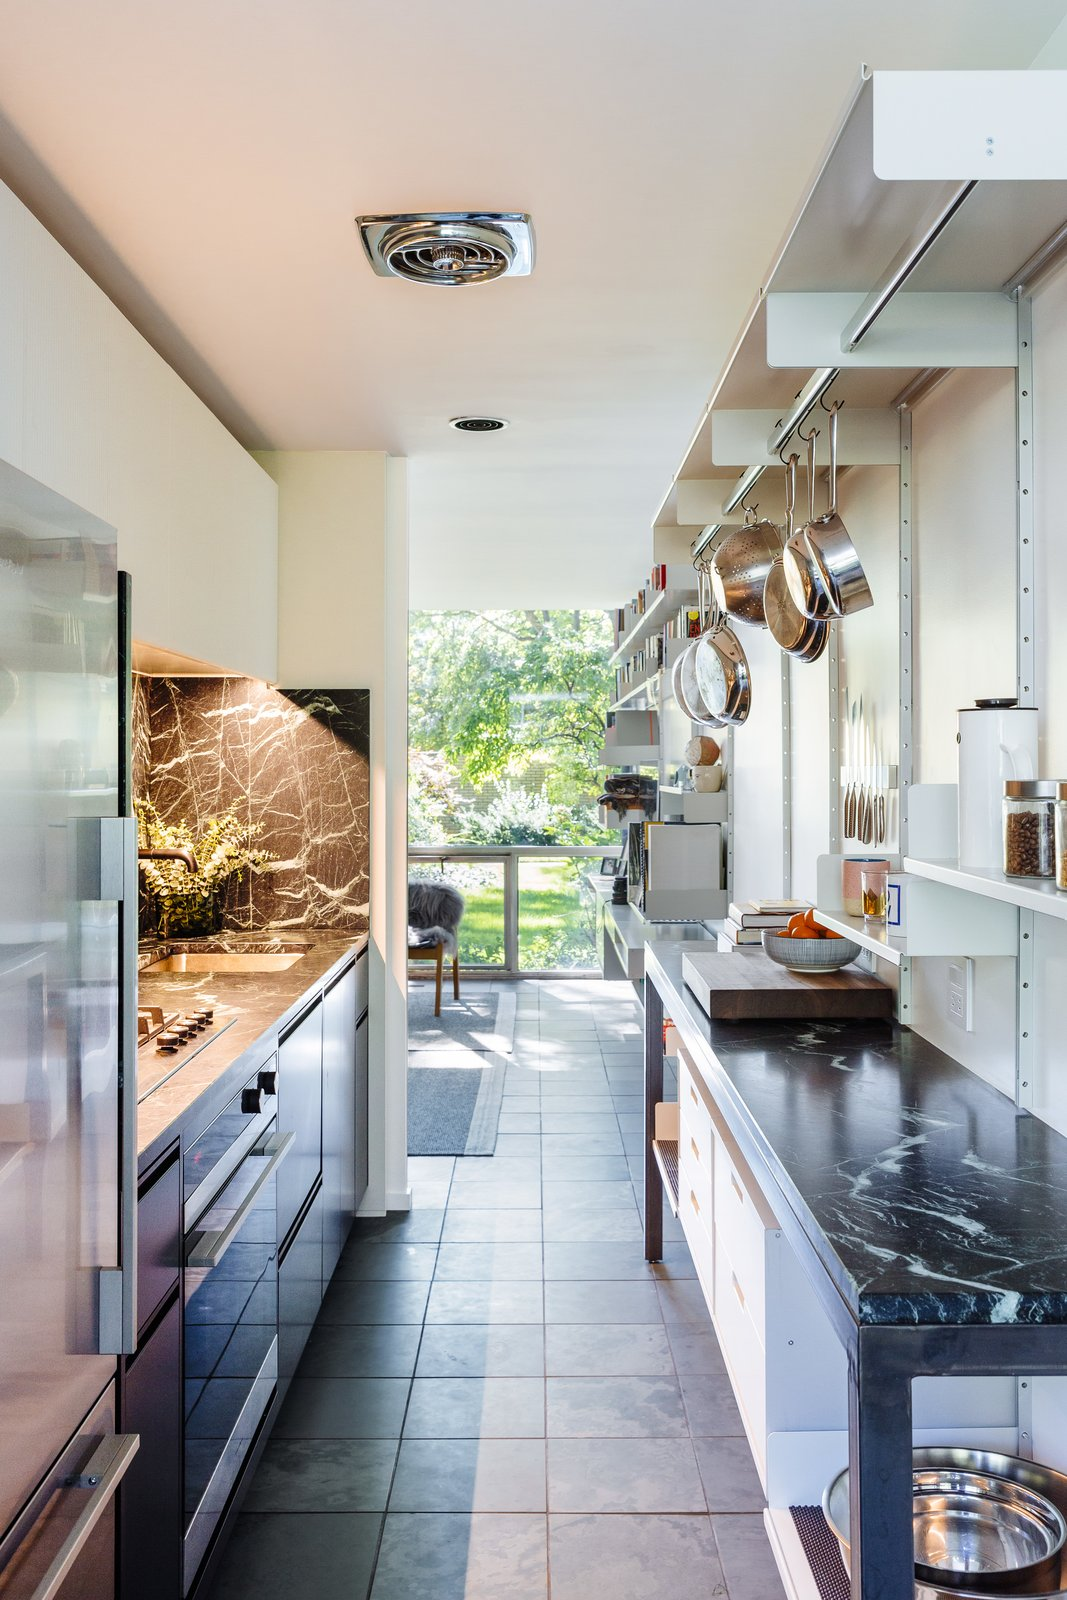 Kitchen, Marble, Refrigerator, White, Range, Undermount, Slate, Accent, and Marble Designer Bryan Boyer and lawyer Laura Lewis bought their townhouse in Lafayette Park in 2015, the same year the storied co-op joined the National Register of Historic Places. Their restoration included laying slate floor tiles the same size as the original linoleum squares, hanging modular Dieter Rams wall shelving, and adding appliances by Fisher & Paykel.  Best Kitchen Marble Slate Photos from A New York Transplant Remakes One of Mies van der Rohe's Coveted Townhouses in Detroit